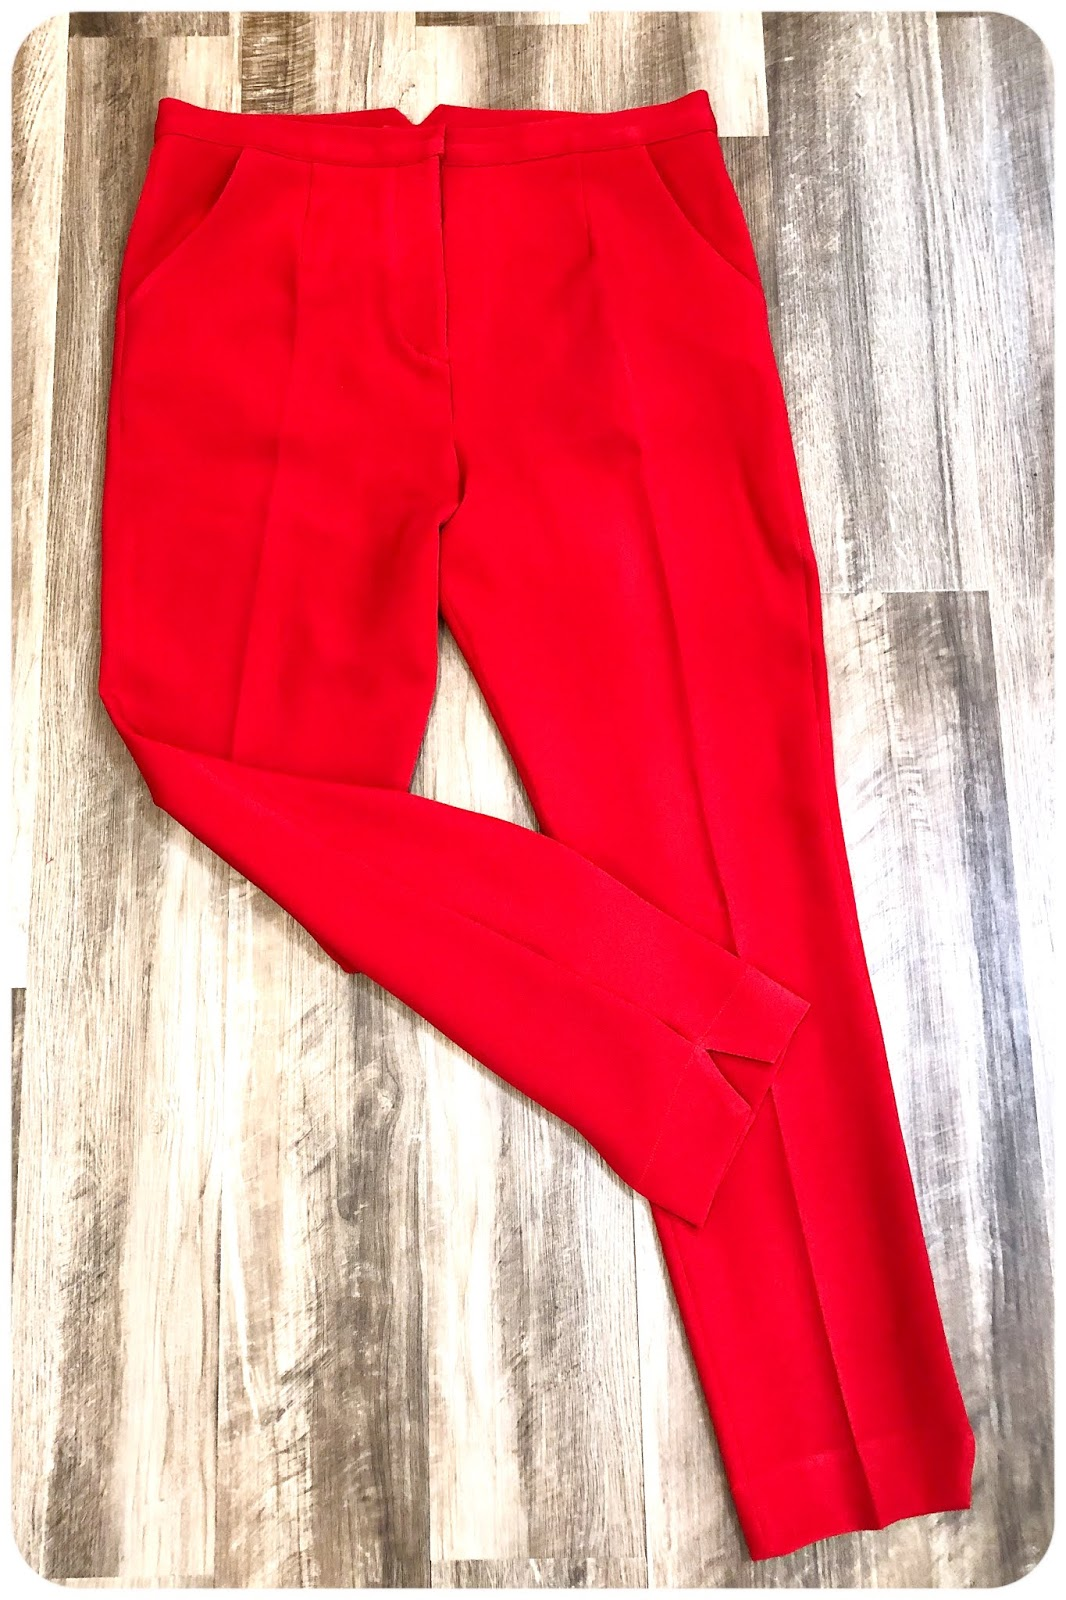 Red Power Suit: Pants - Simplicity 8749 -- Erica Bunker DIY Style!